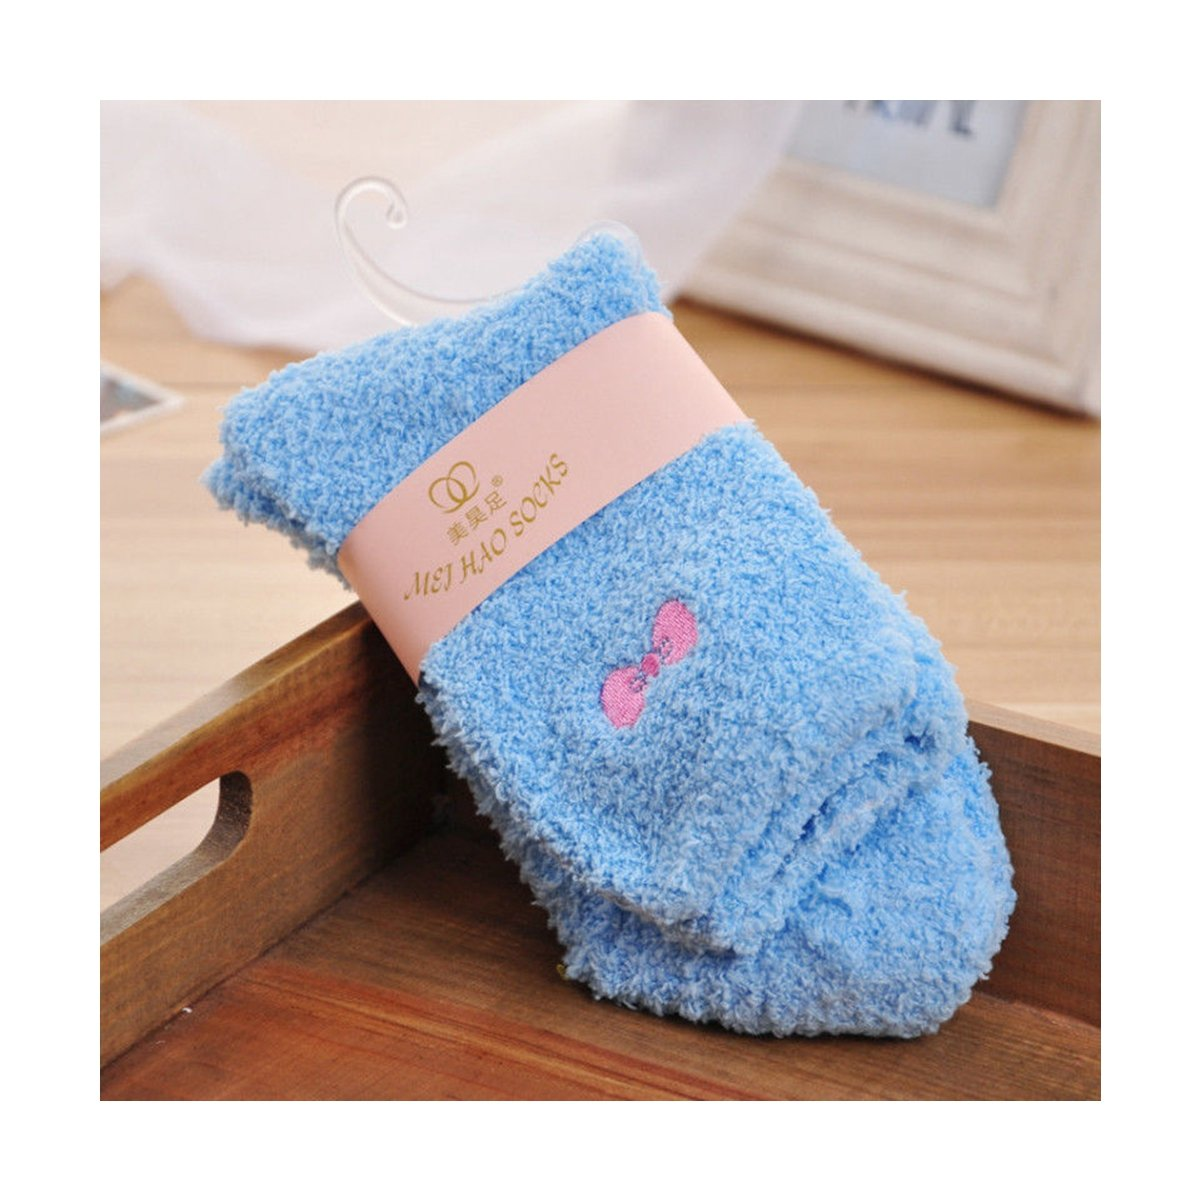 a6291cc14a5 Women s Candy Color Sweet Bow Fuzzy Socks Autumn Winter Cozy Socks Bed Socks